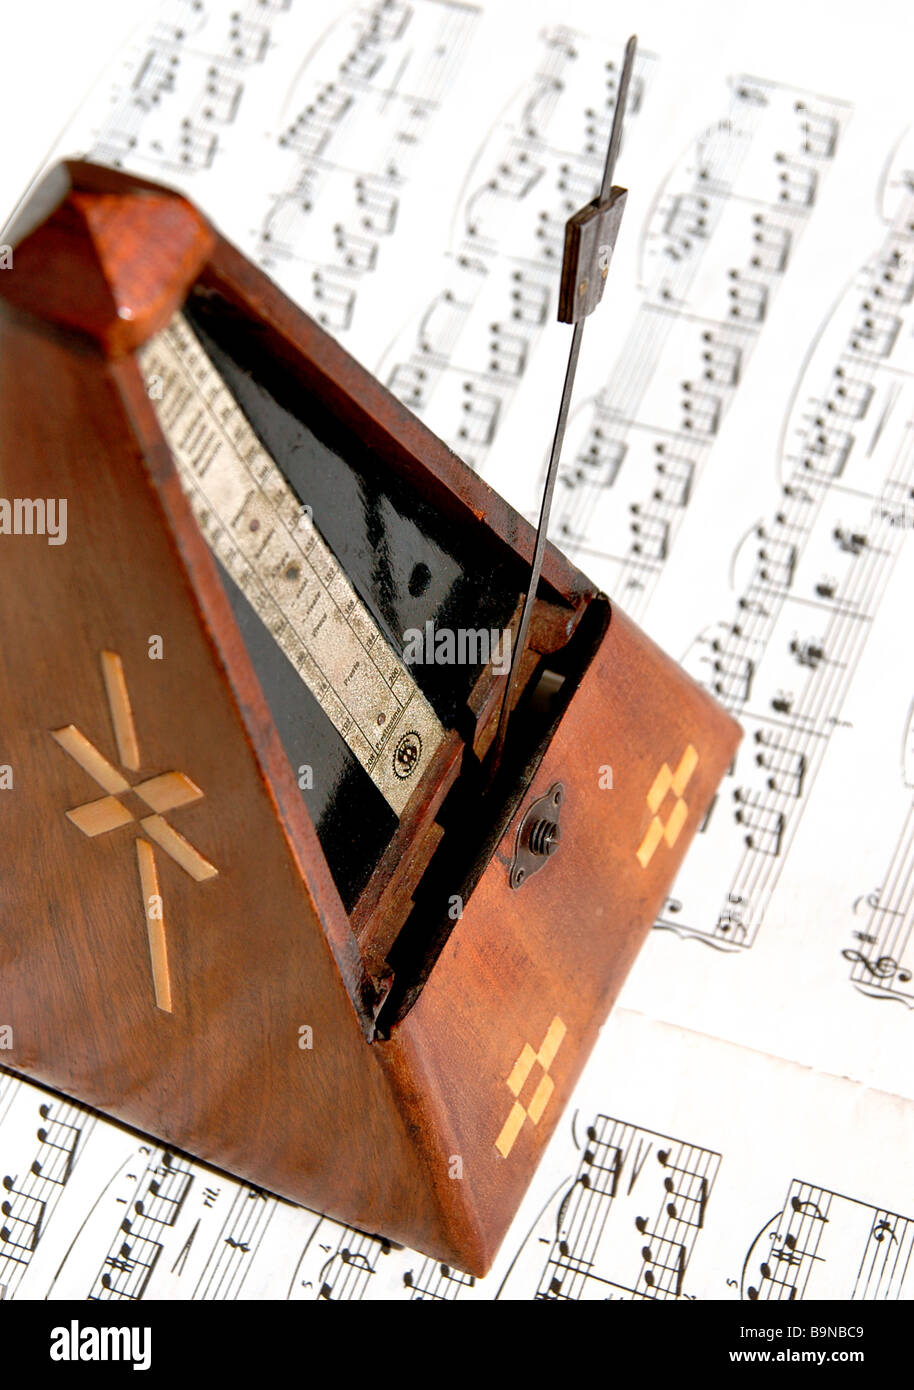 Old German metronome sits on top of sheet music. - Stock Image